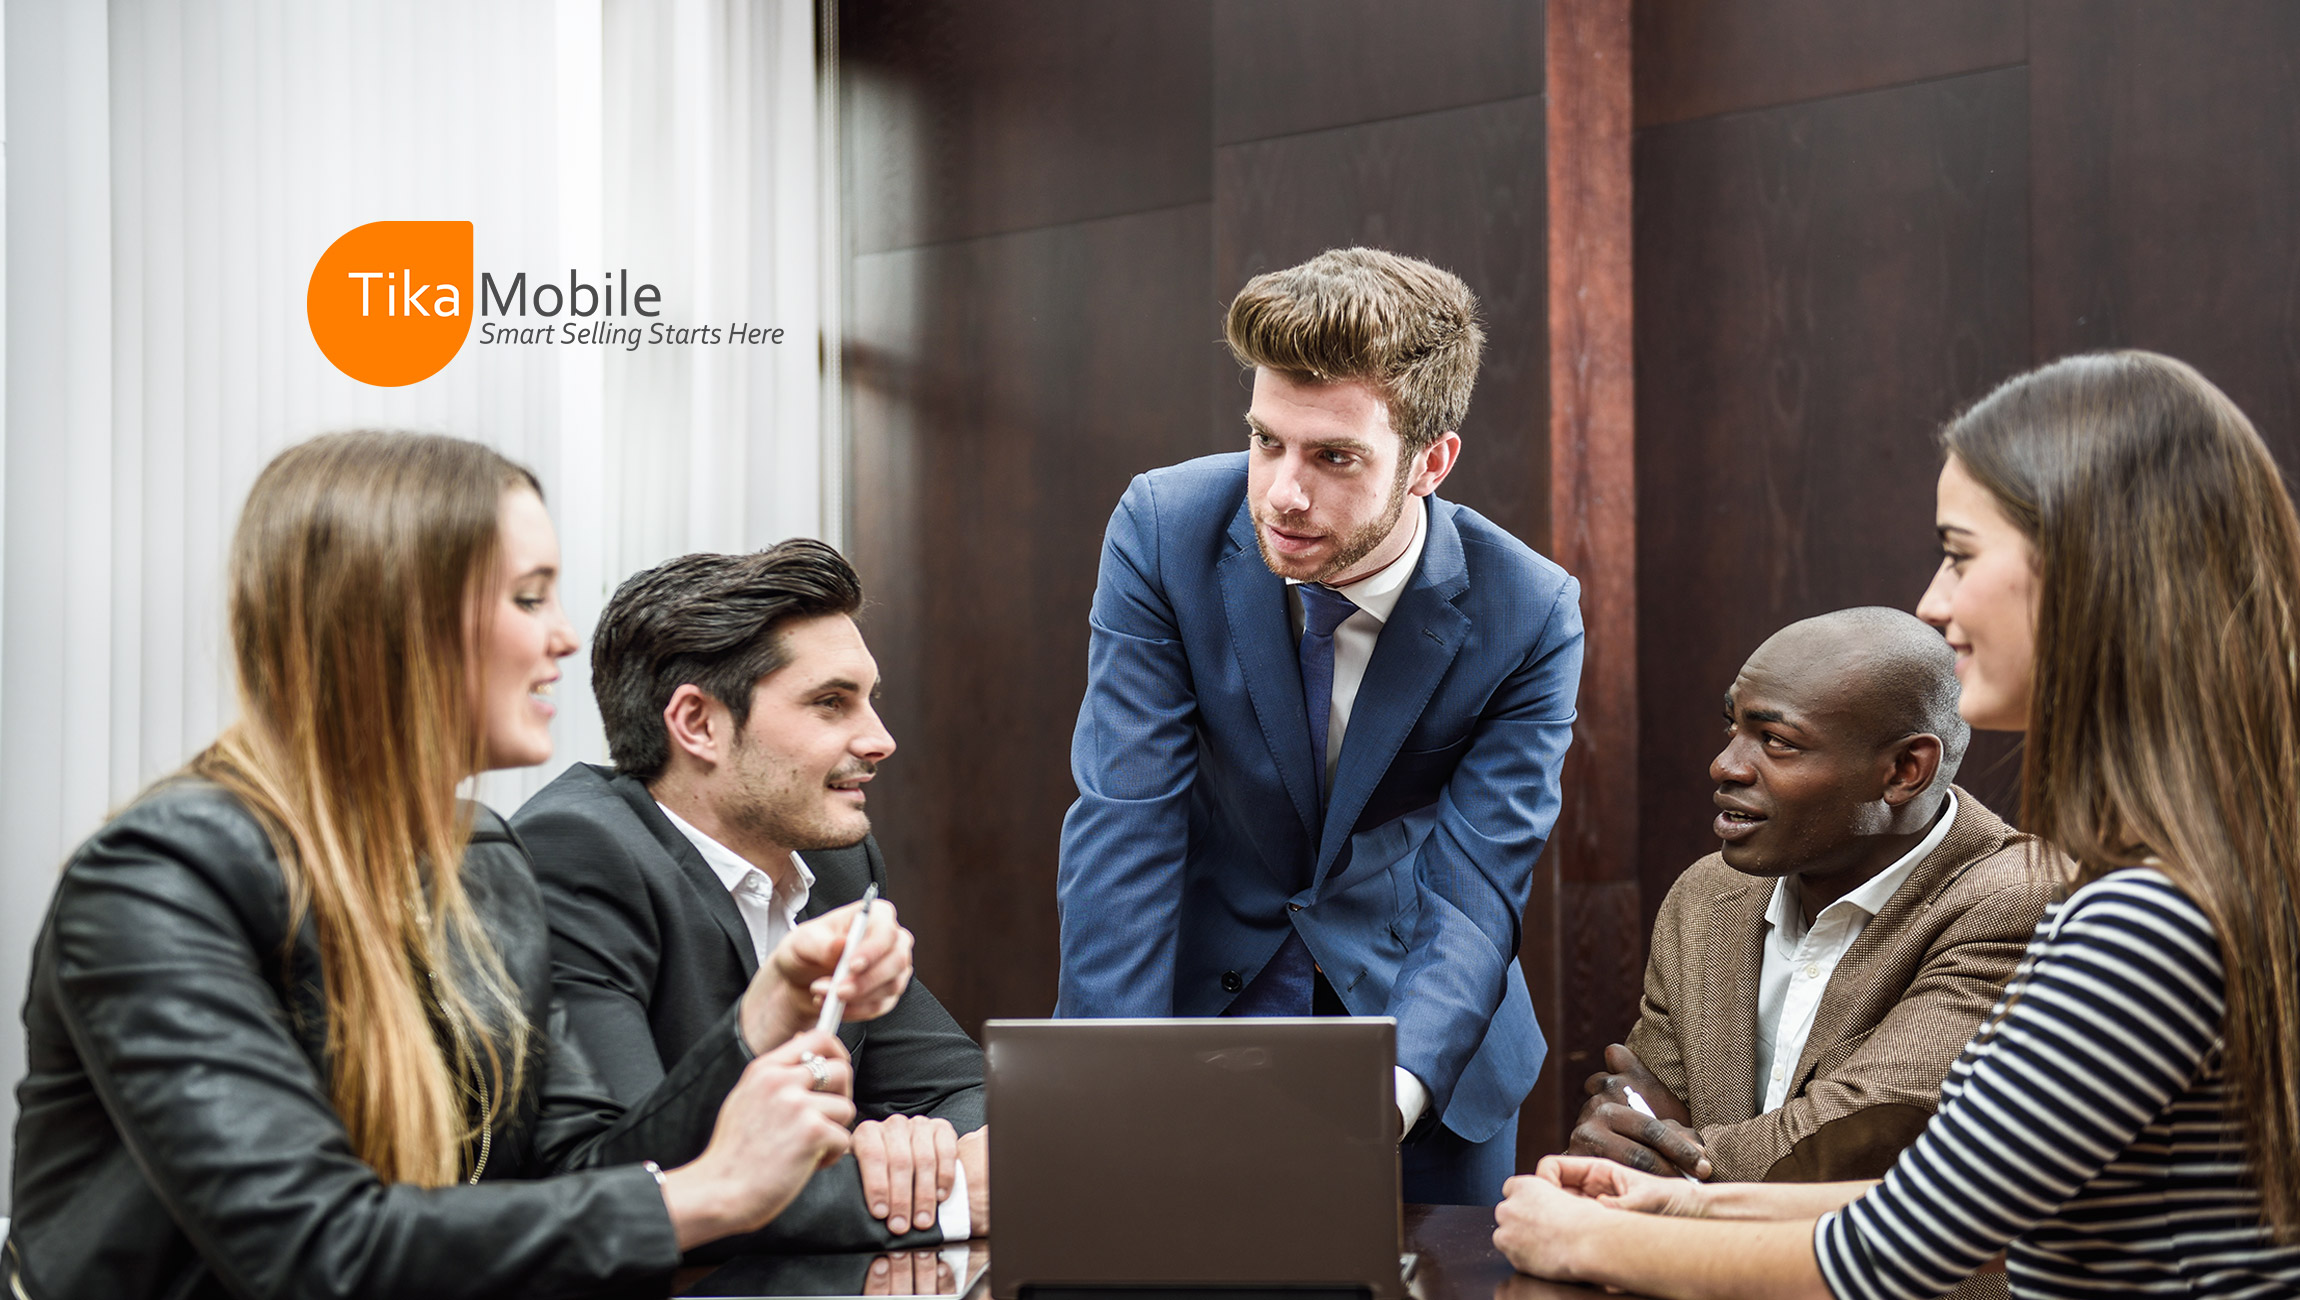 TikaMobile Announces Business Intelligence CRM Solution for Market Access Teams to Increase Coverage and Pull-through Performance of Sales Teams